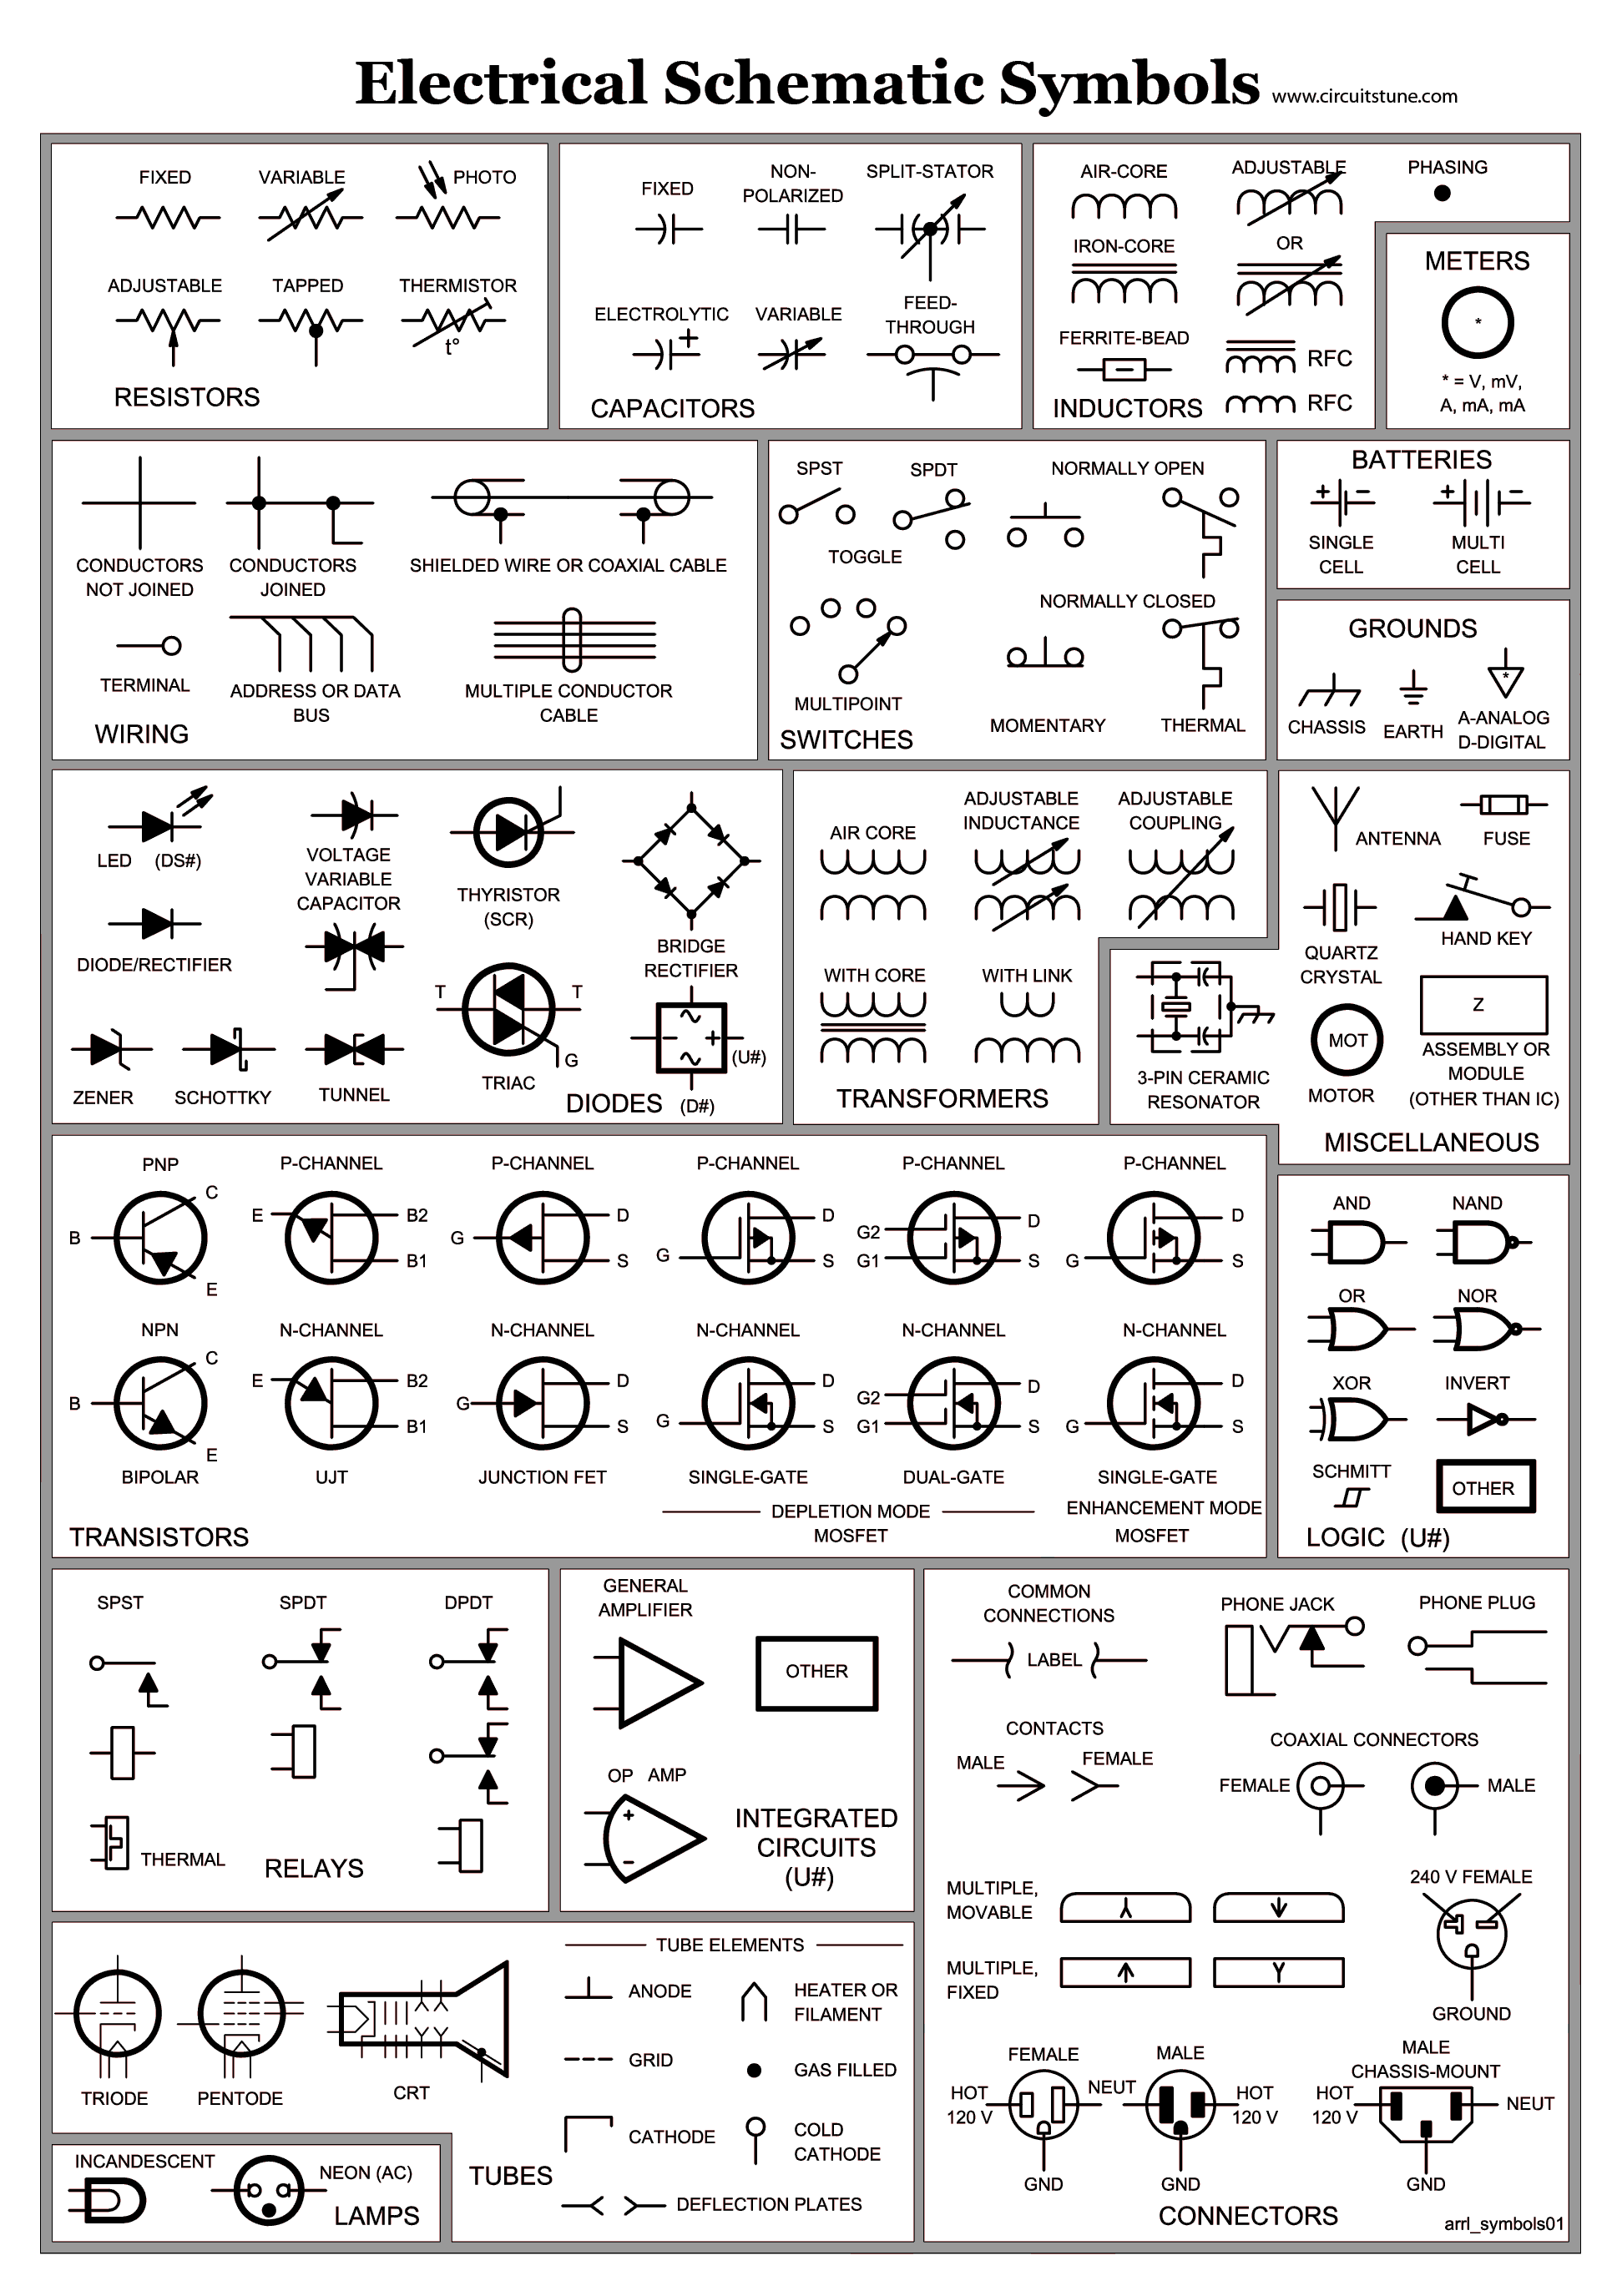 a65d176364692d2ebe913b58a654cfc3 electrical schematic symbols skinsquiggles pinterest symbols Breaker Box Symbol at couponss.co